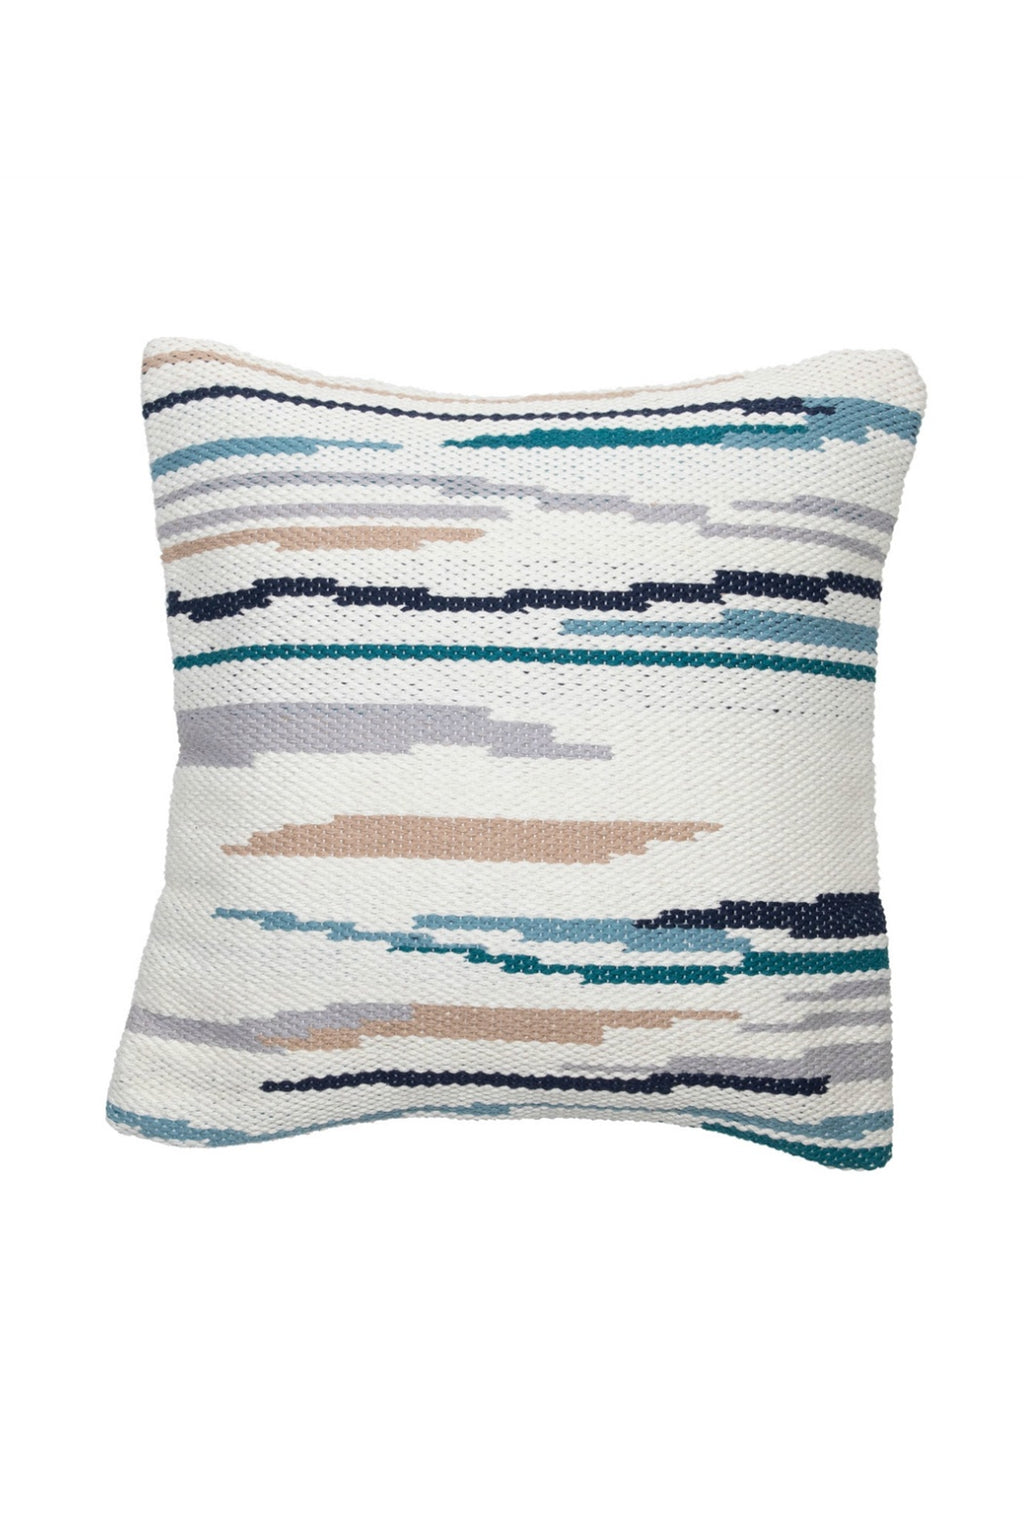 Foreside Hand Woven Hayes Pillow in Blue